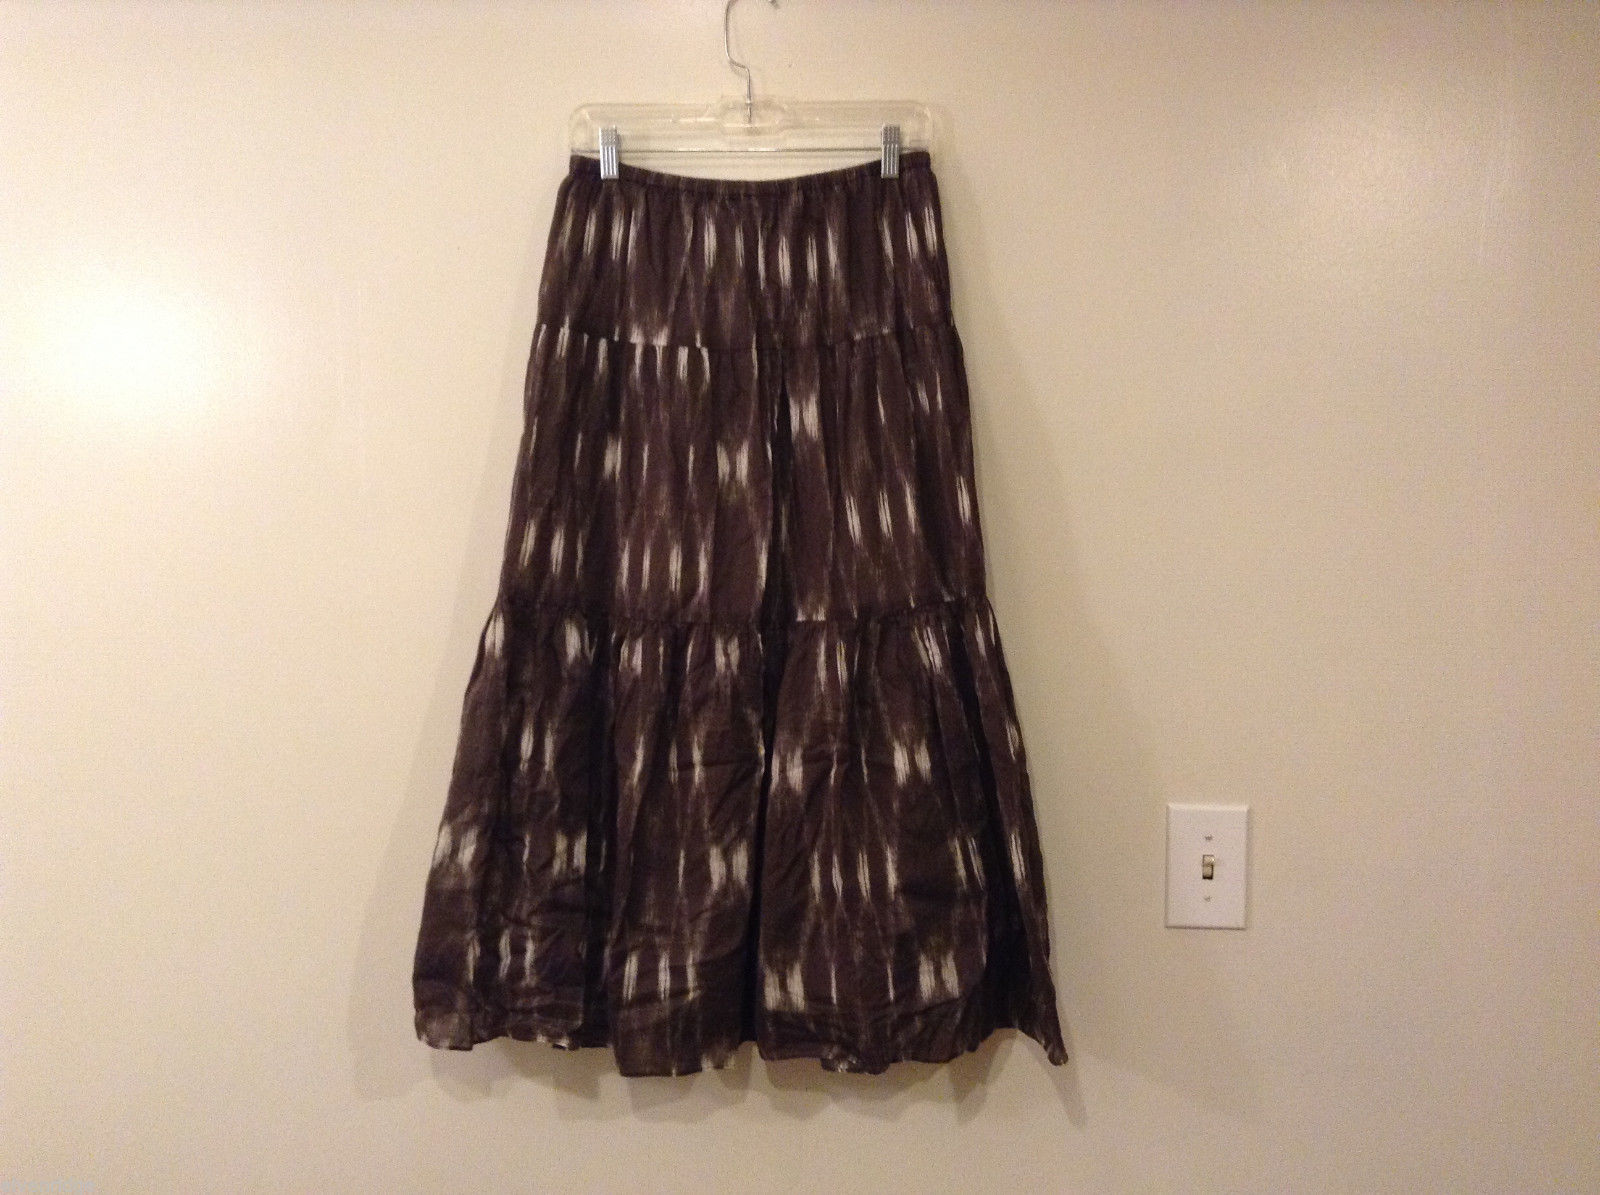 Talbots Petites Tiered Brown Skirt 100% cotton size S fully lined